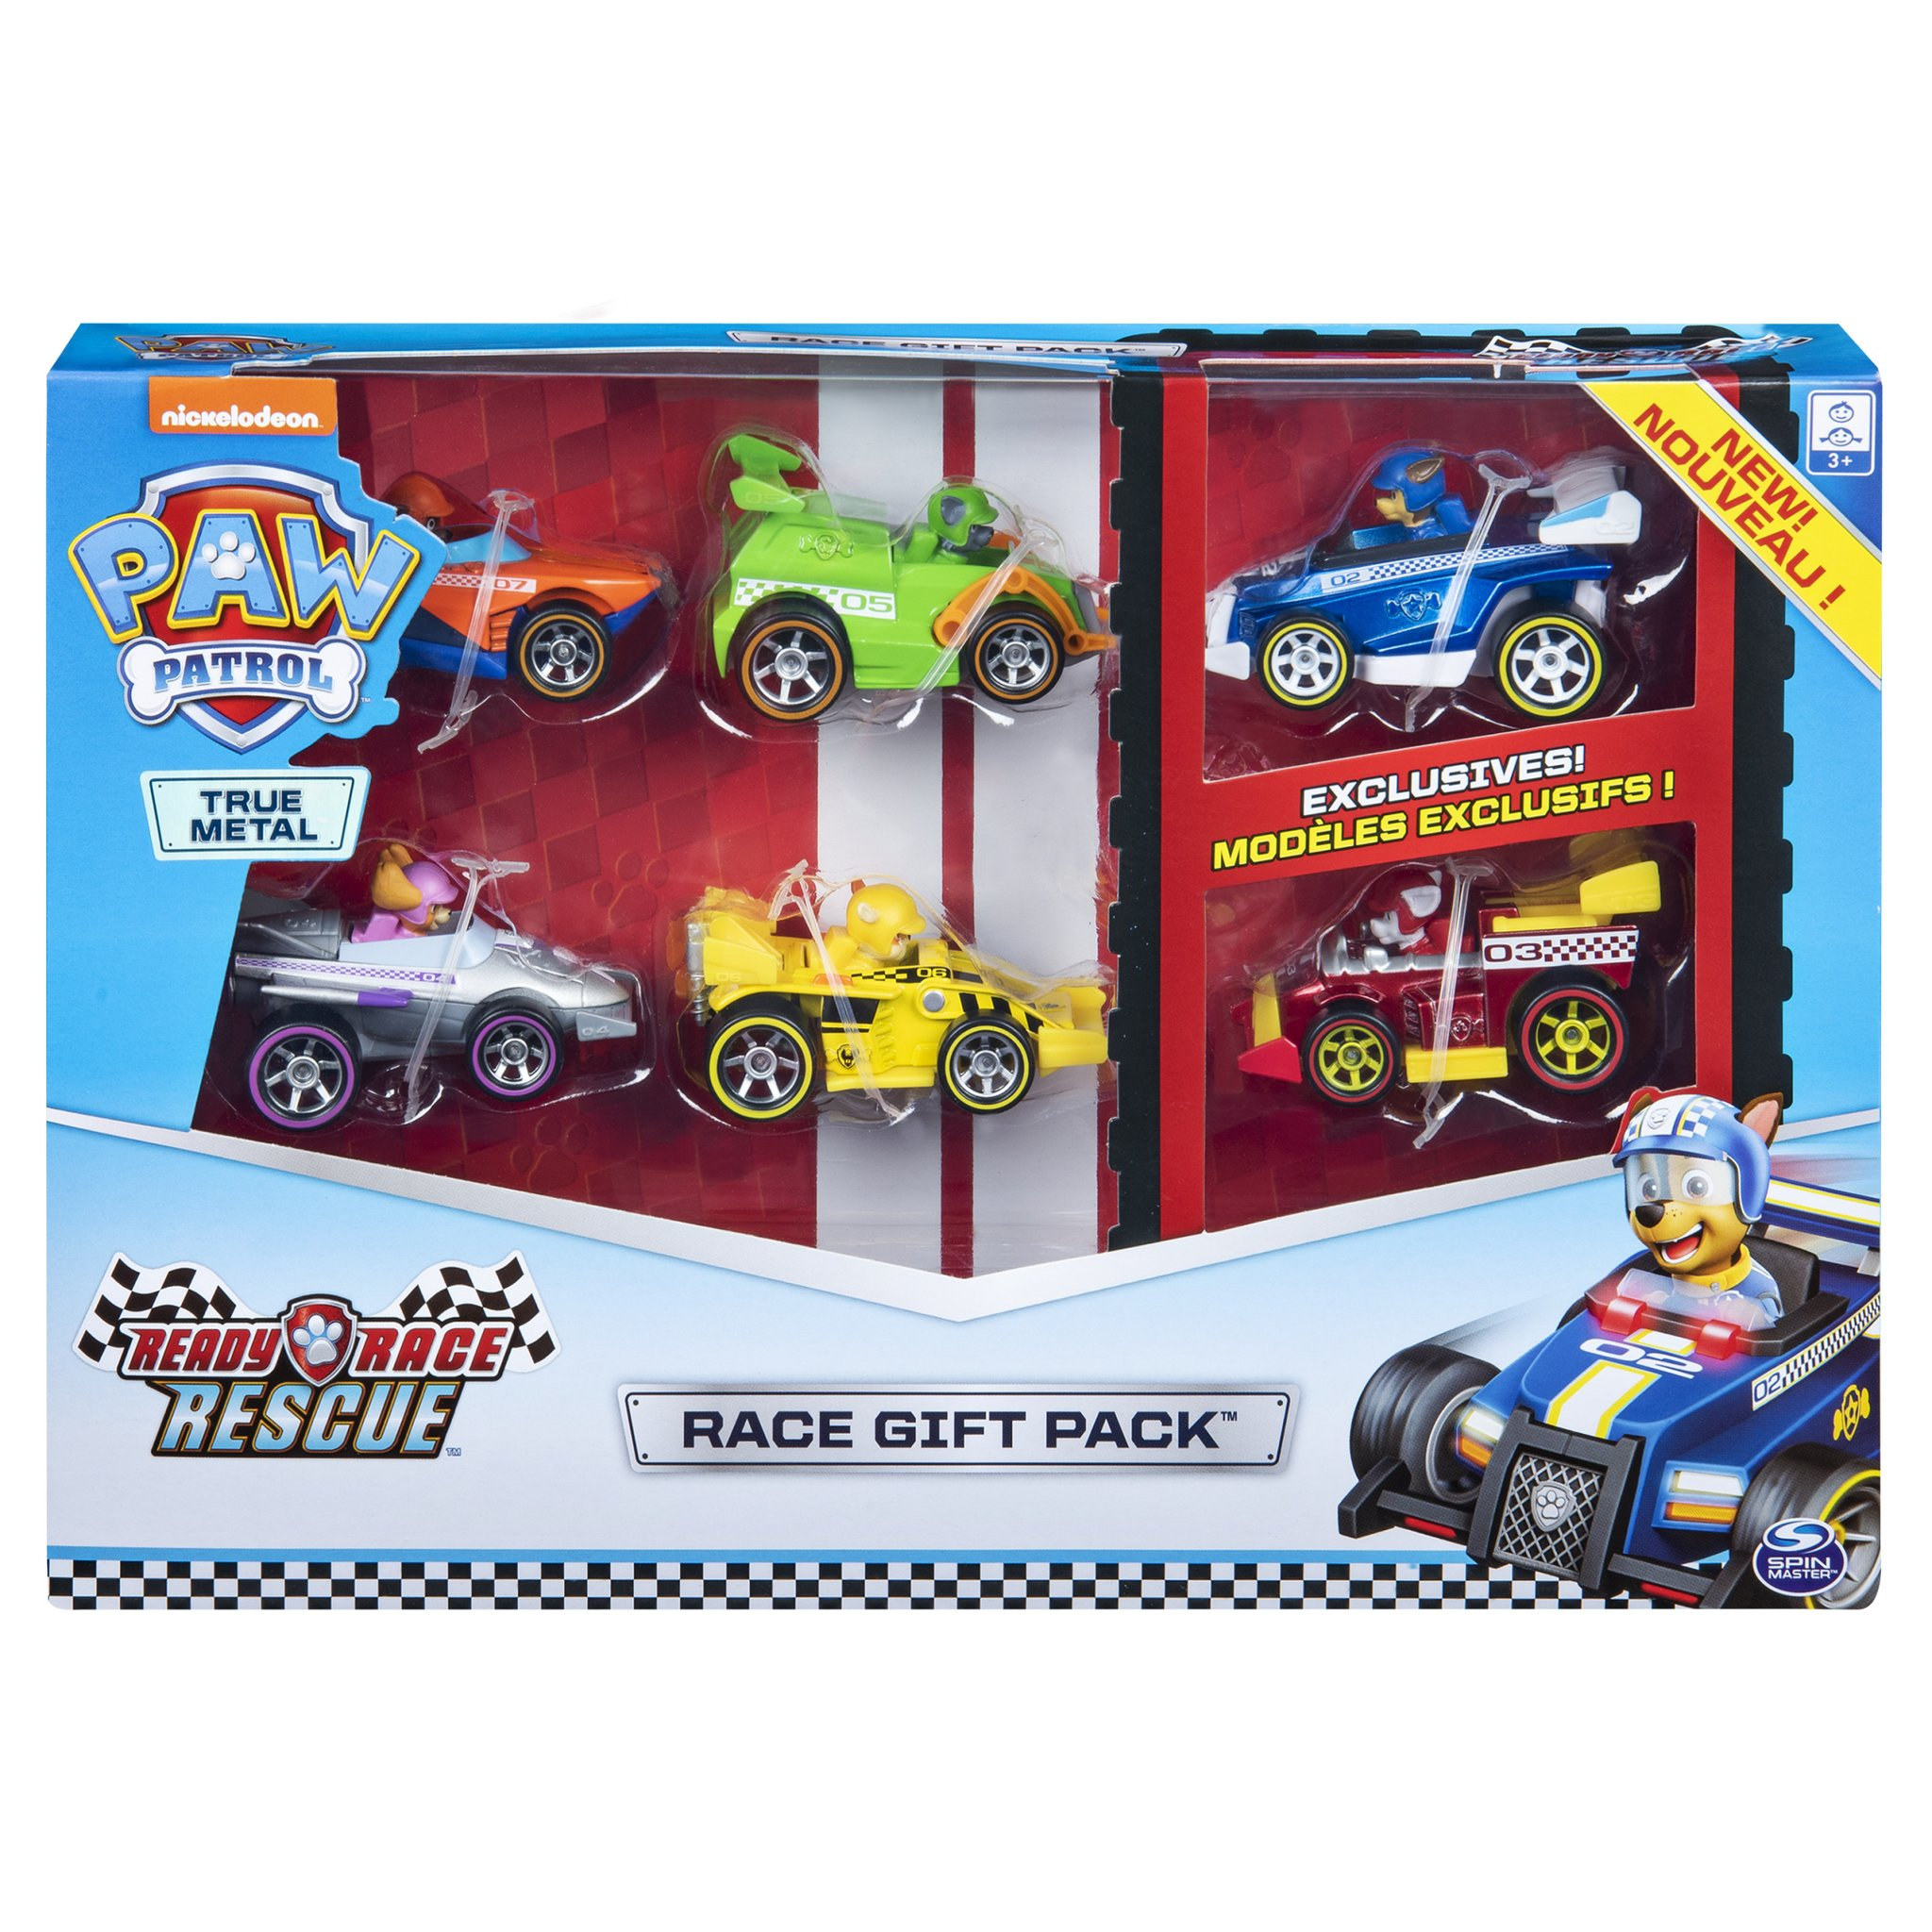 Spin Master Toys Uk On Twitter There Is Also A Gift Pack With 6 Cars Inside Readyracerescue